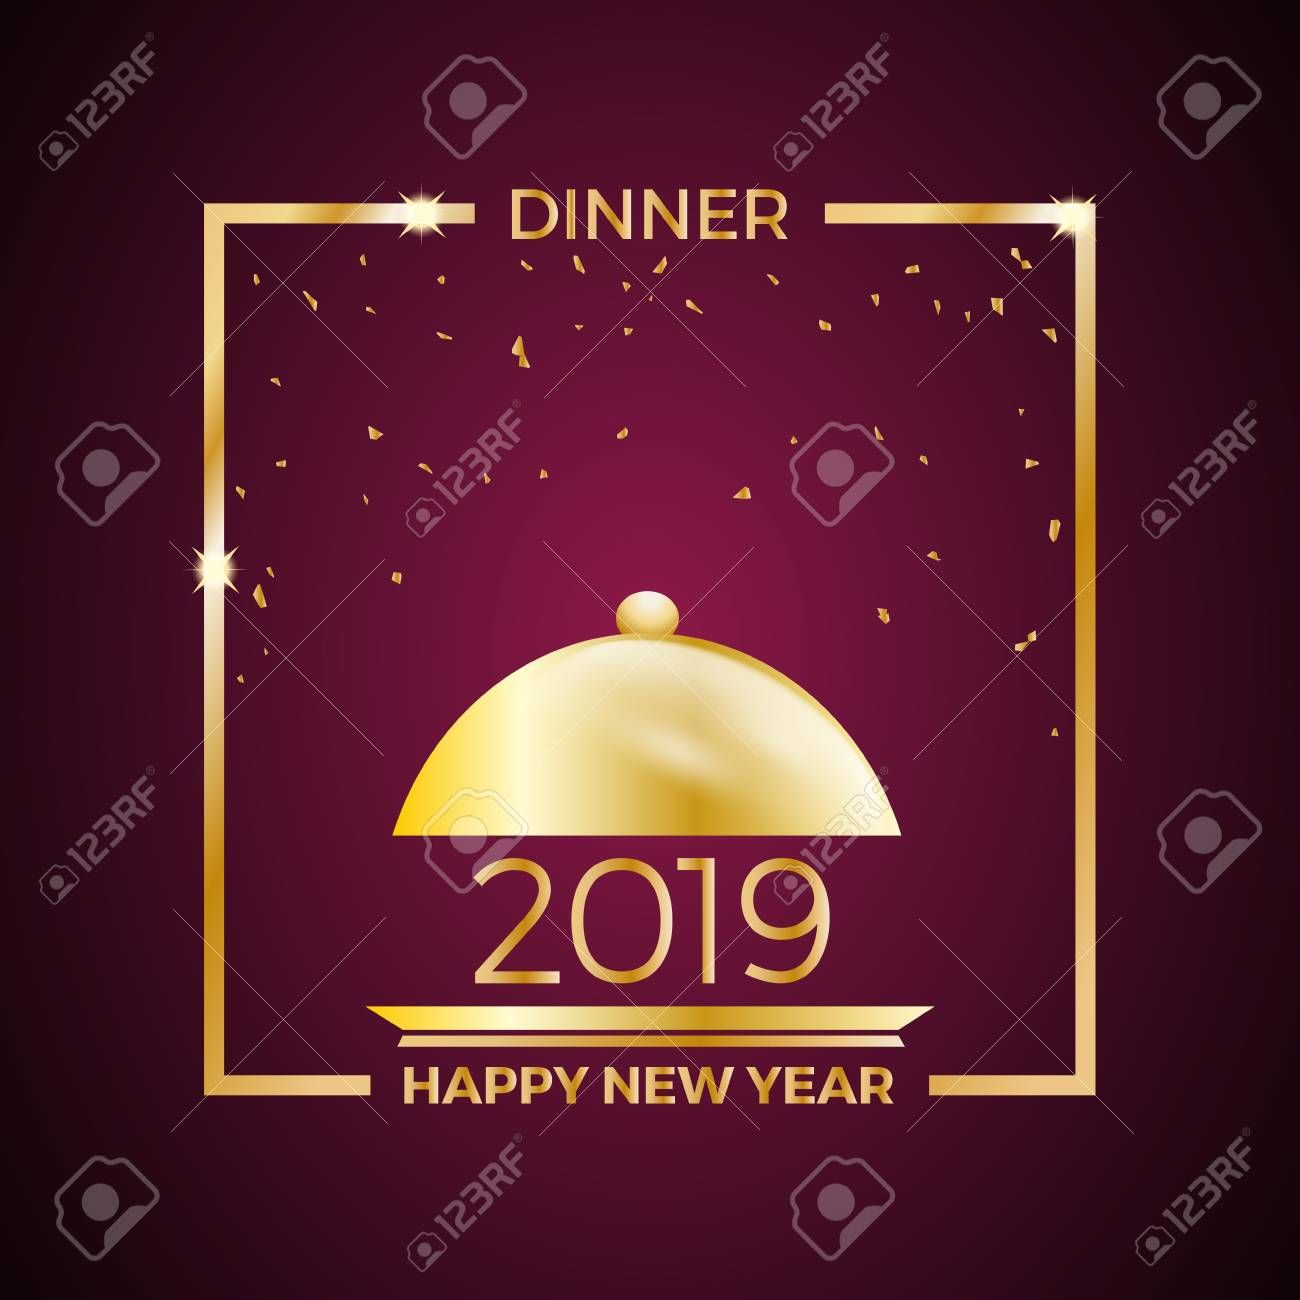 2019, New Years Eve dinner, template for poster, cover and